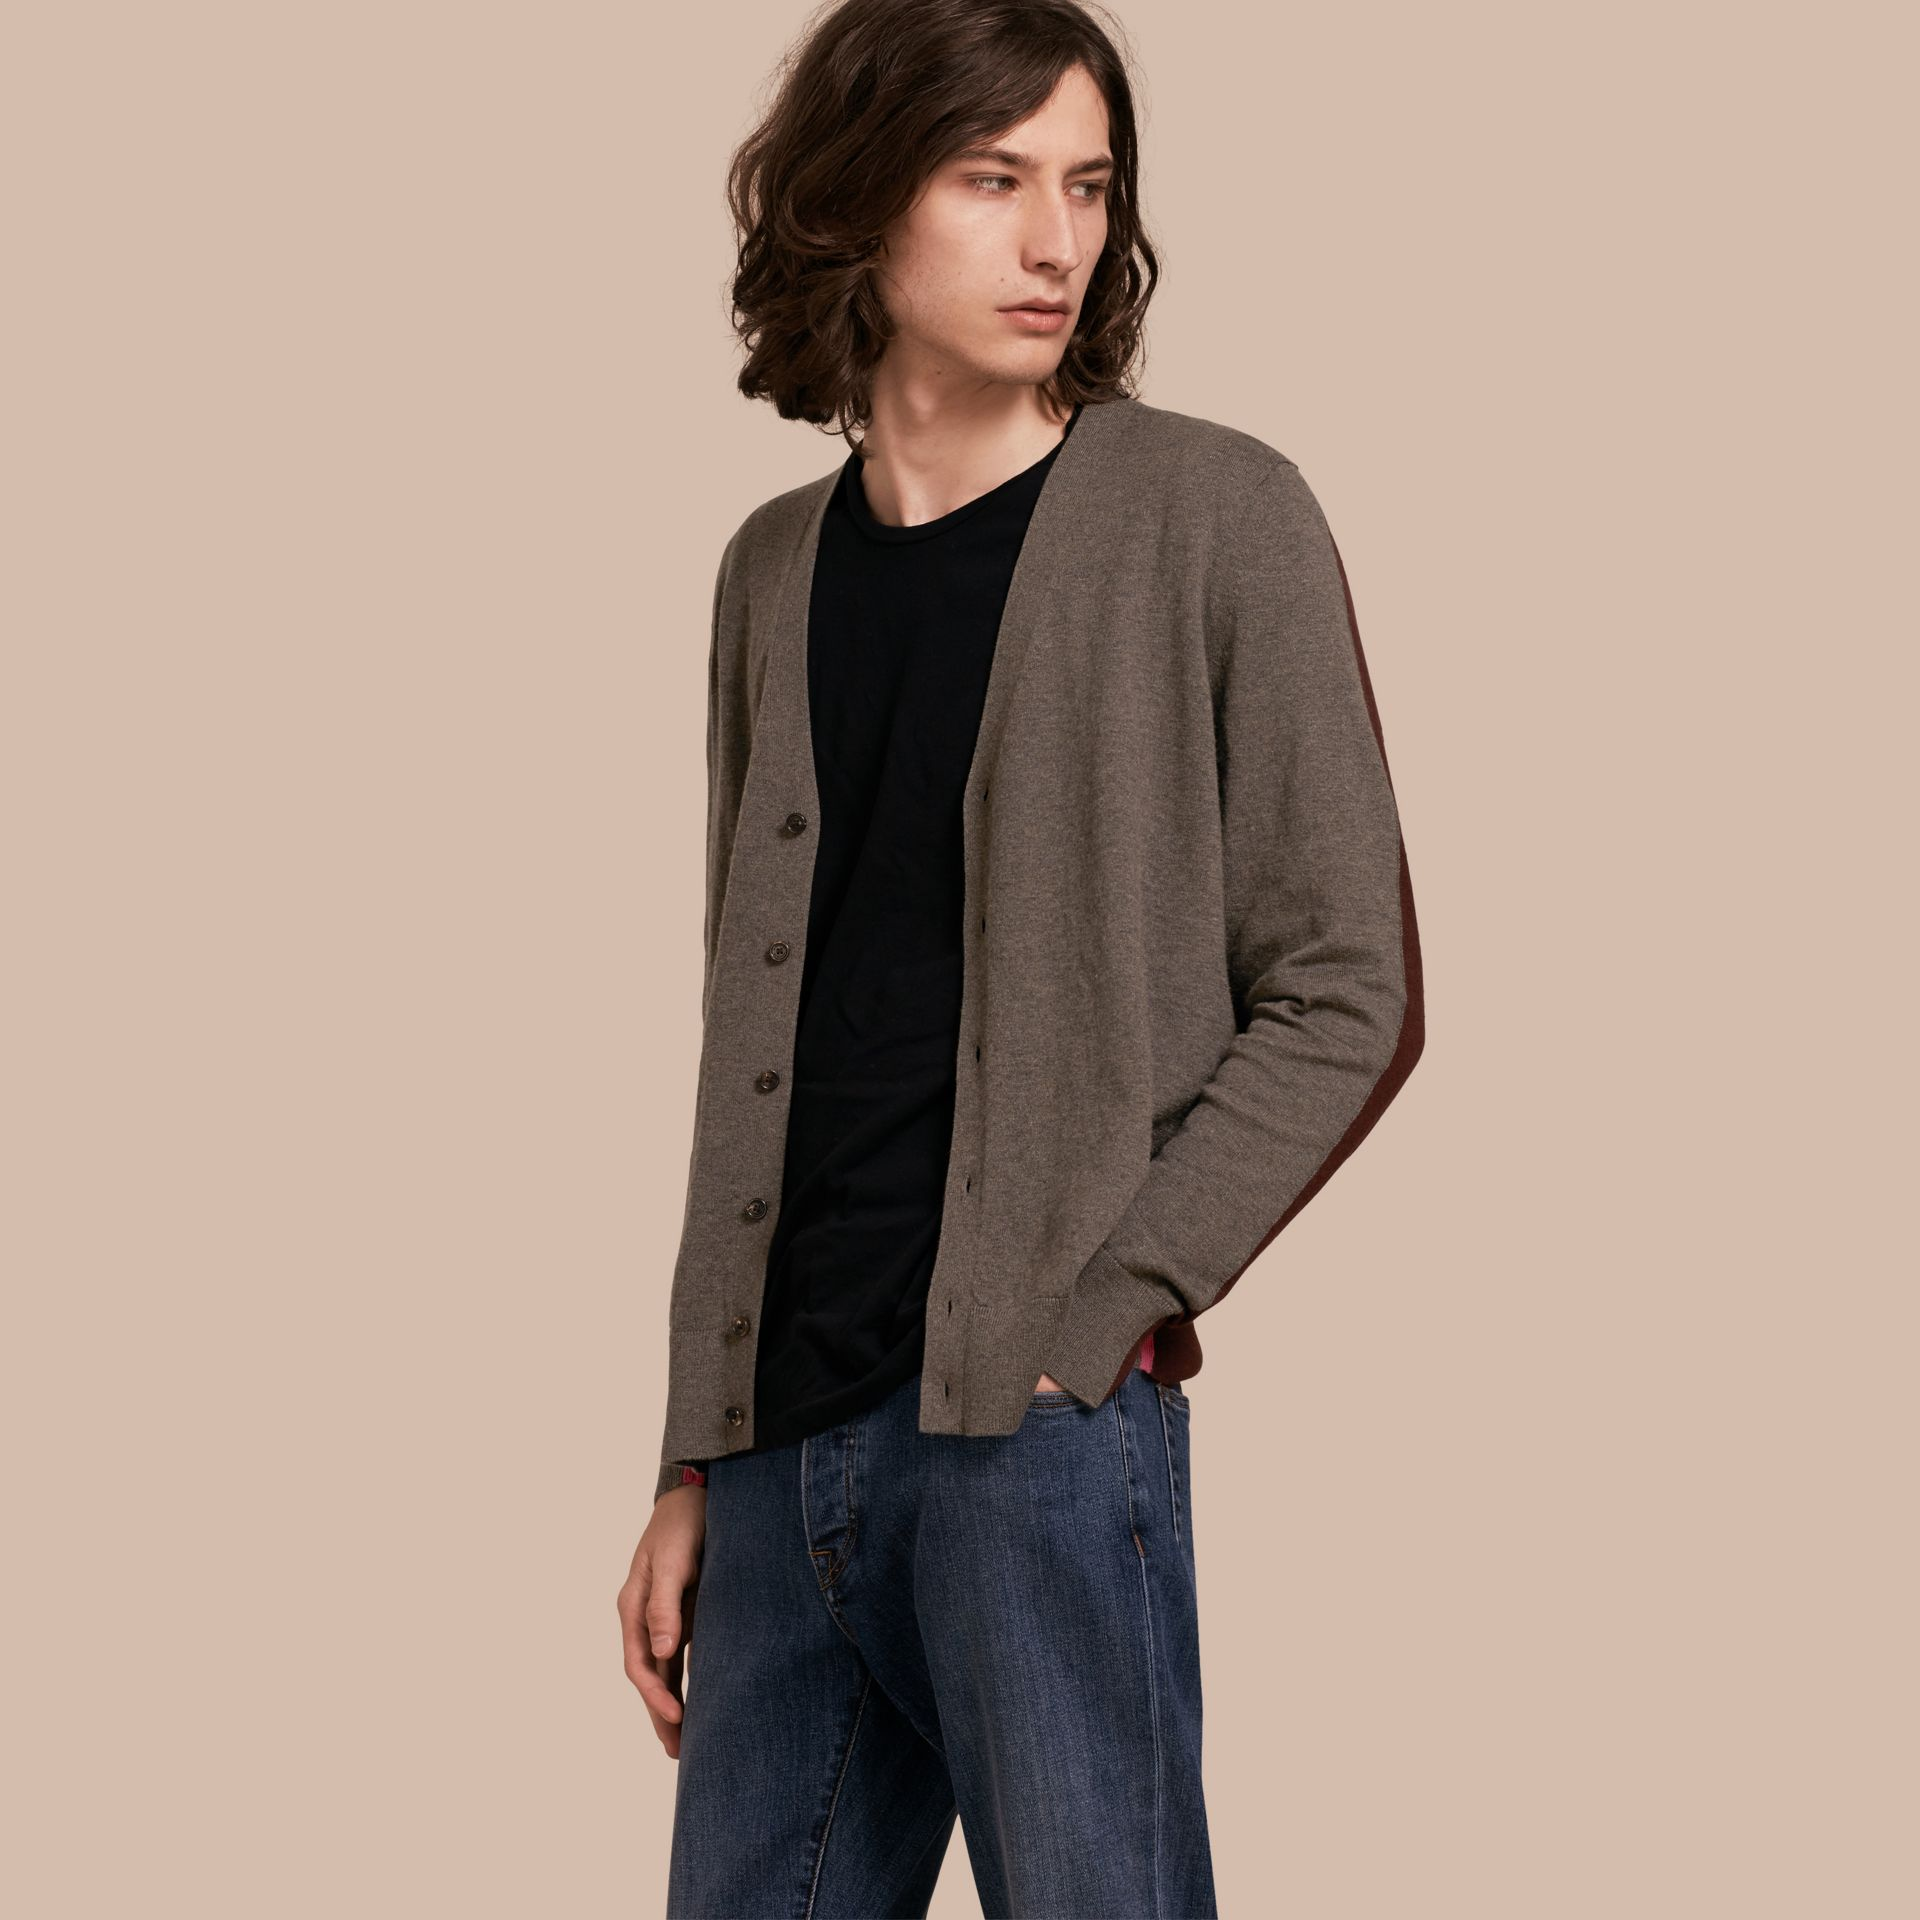 Mink grey Colour Block Cashmere Cotton Cardigan - gallery image 1